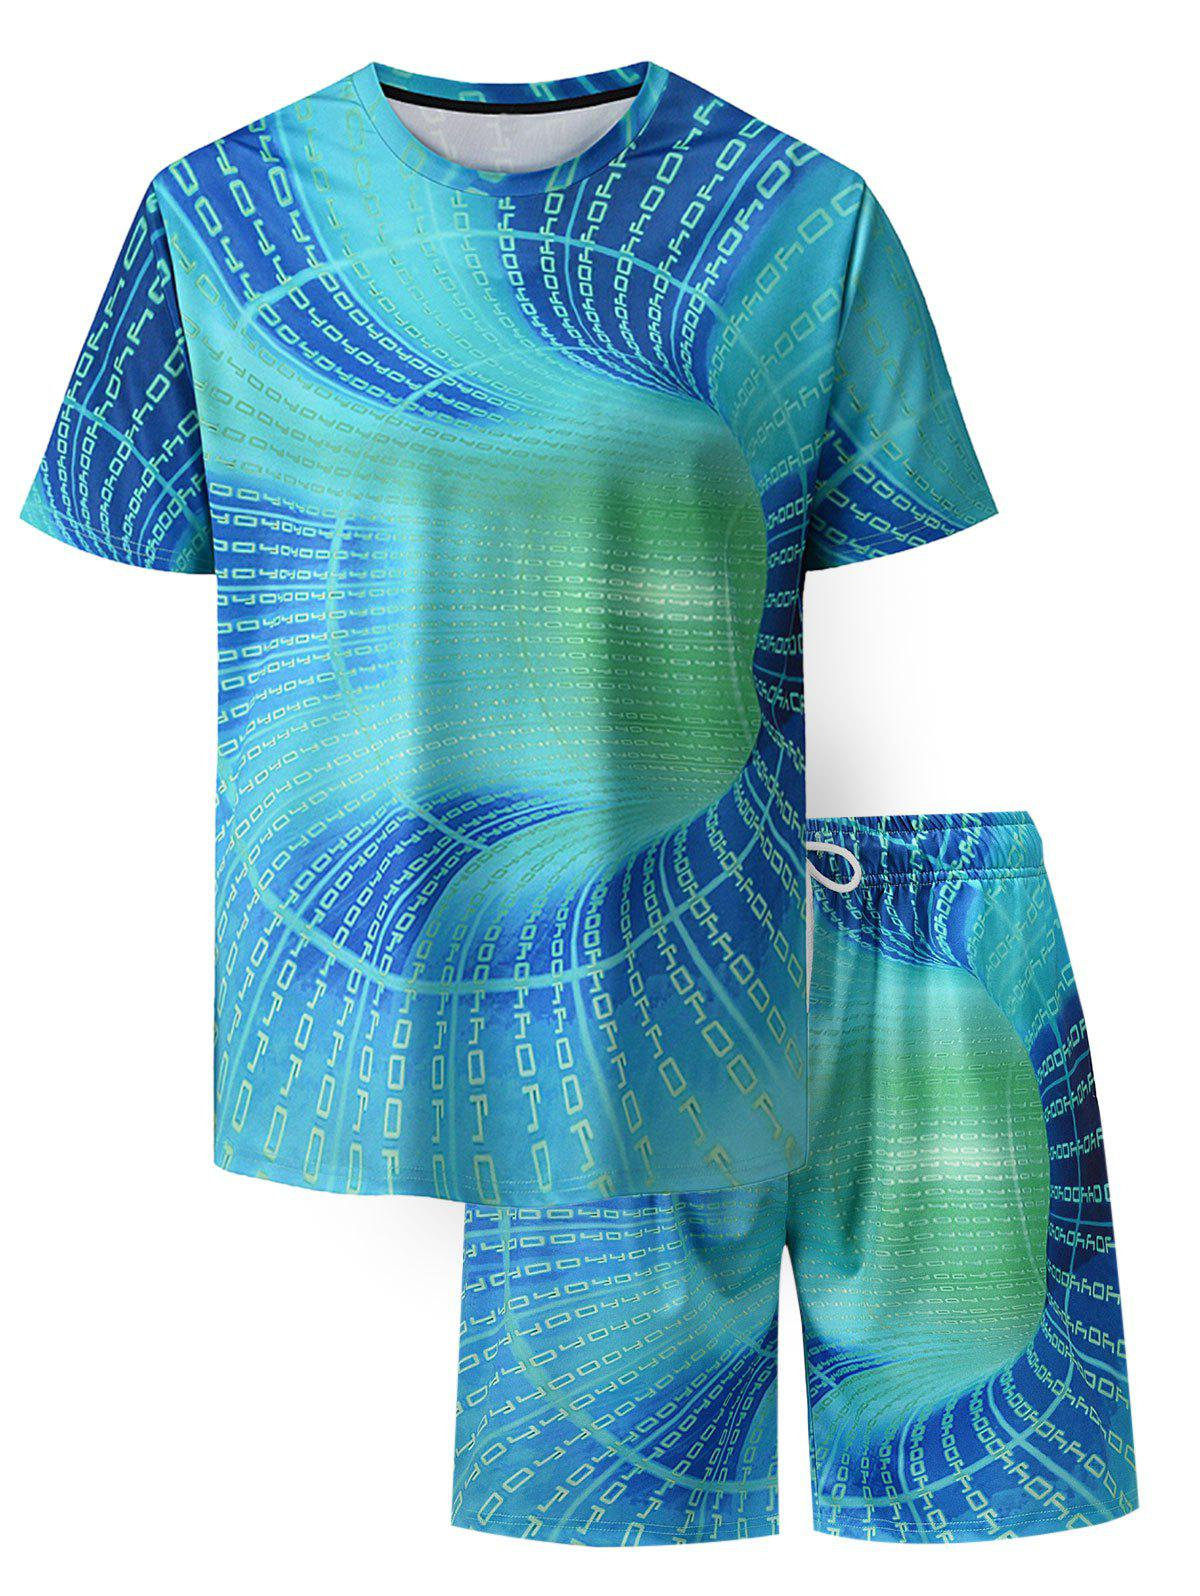 Letter Allover Print T-shirt And Shorts - TURQUOISE XL